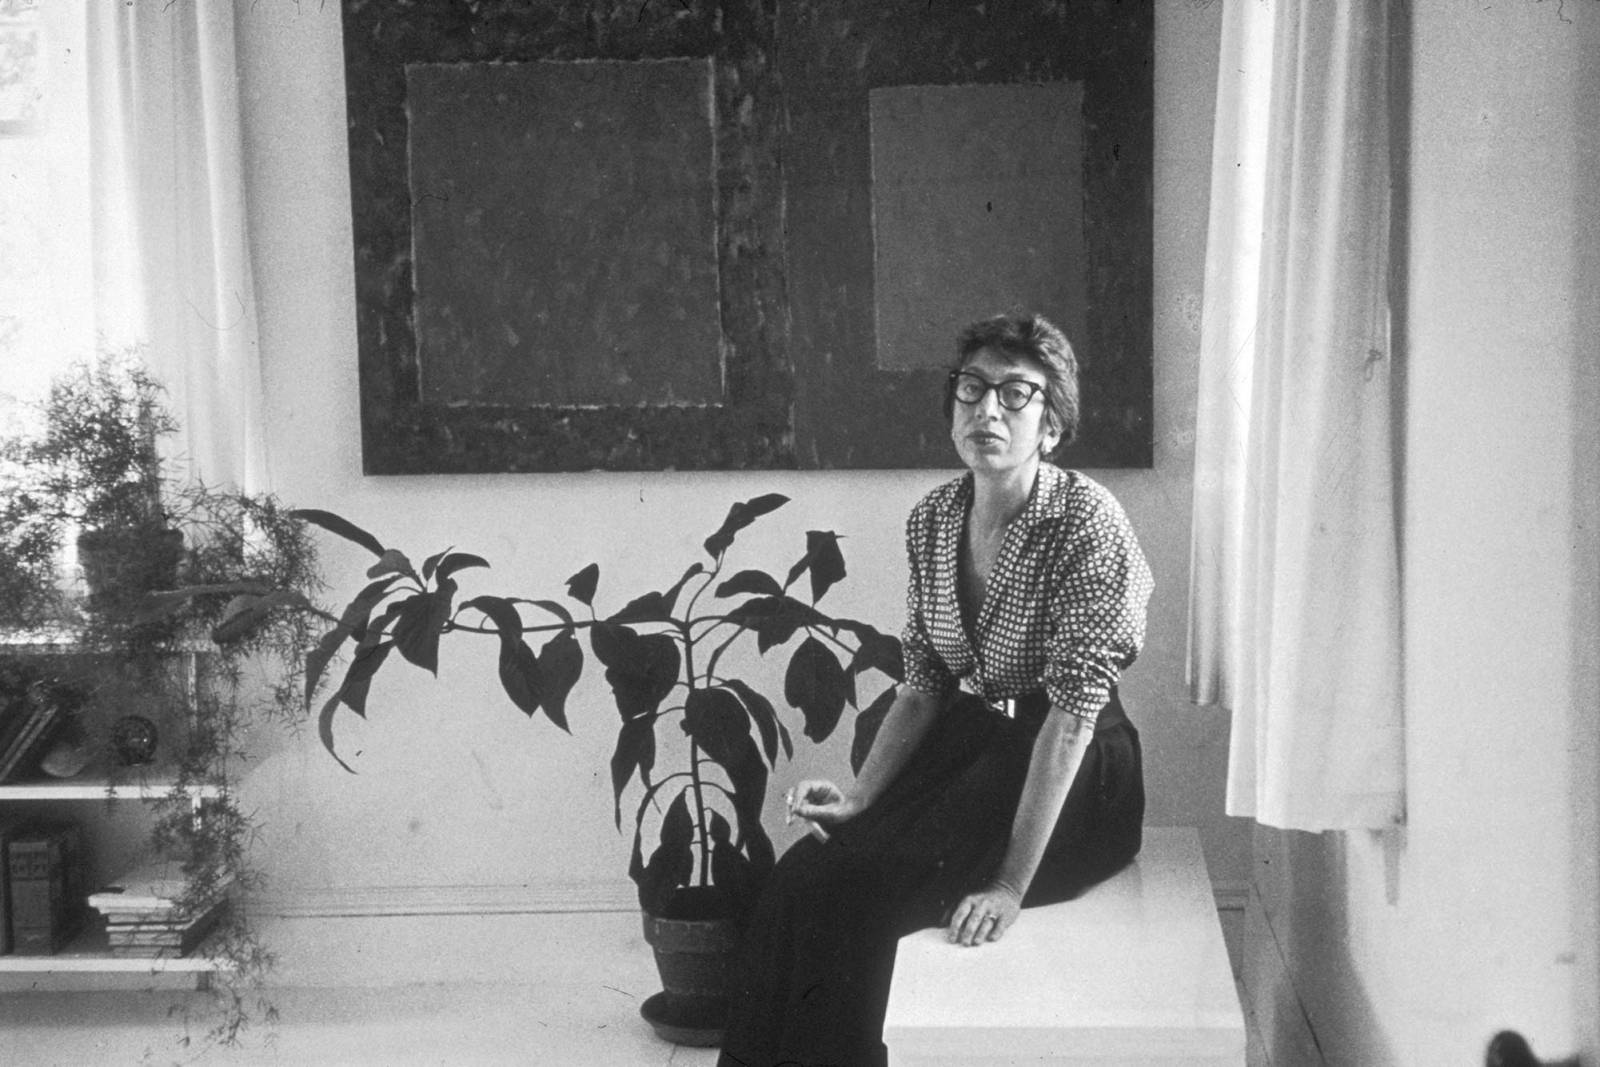 Lee Krasner (Fot. Getty Images)